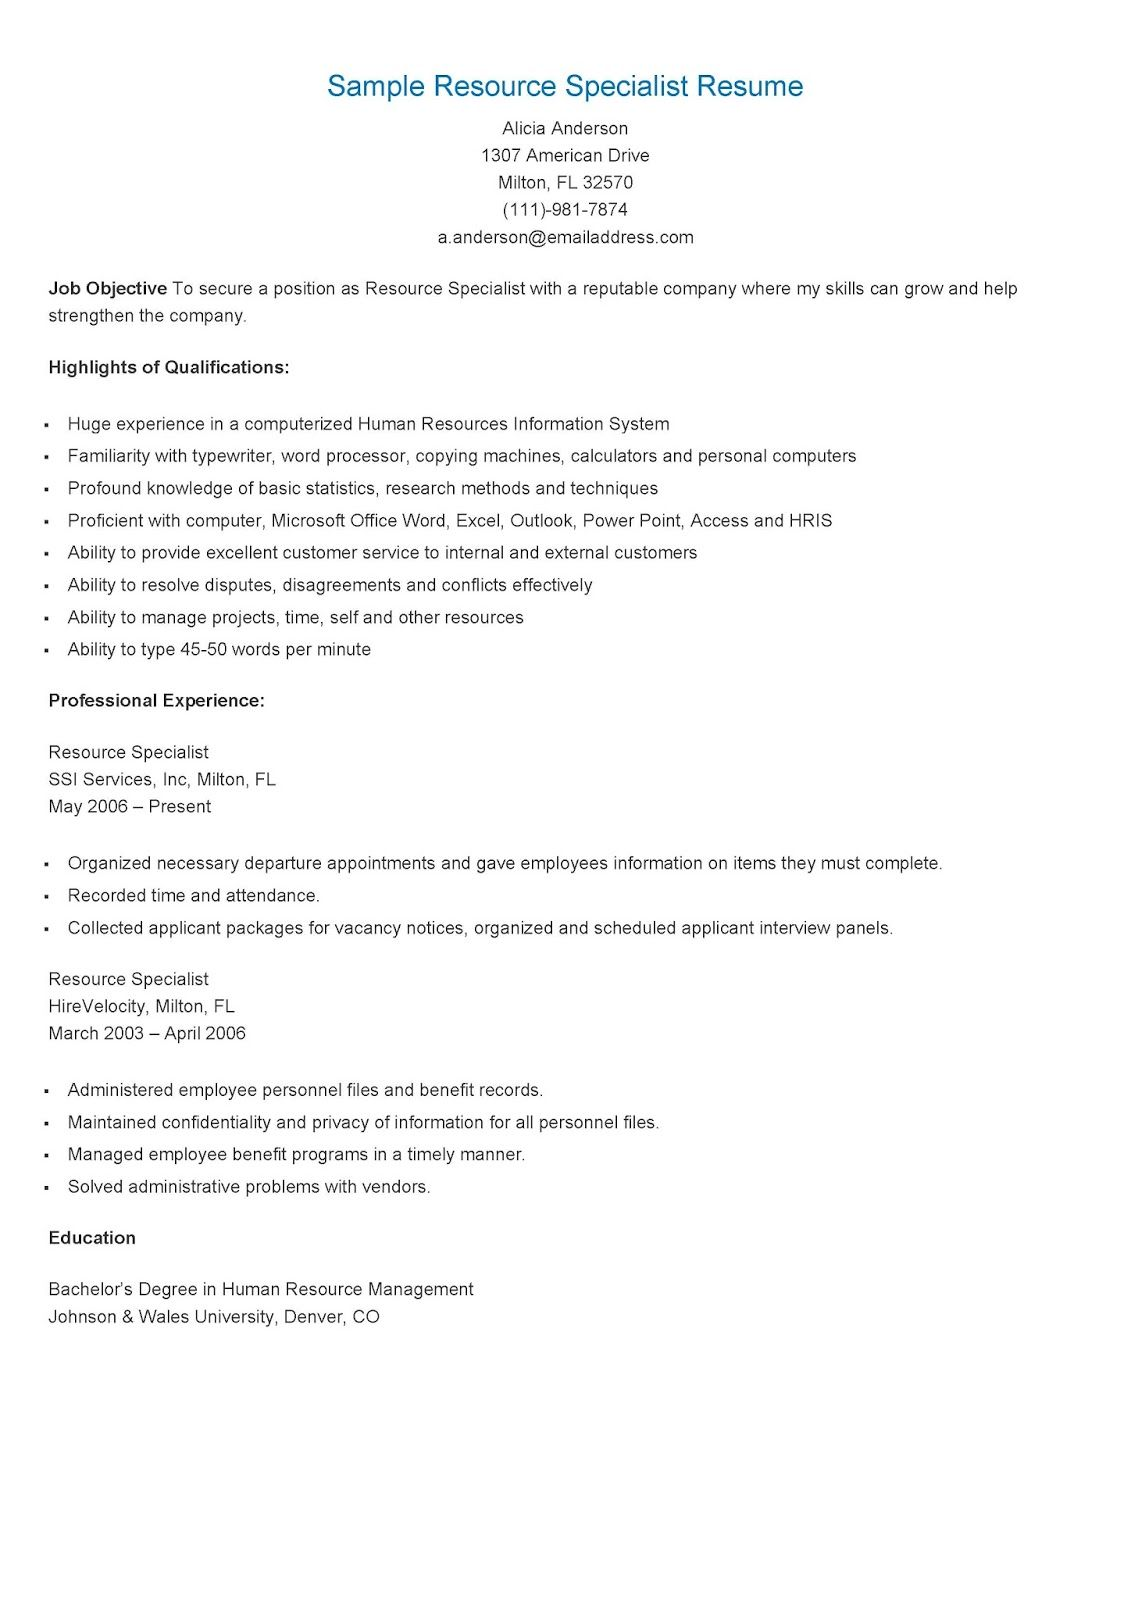 Sample Resource Specialist Resume | resame | Pinterest | Childhood ...